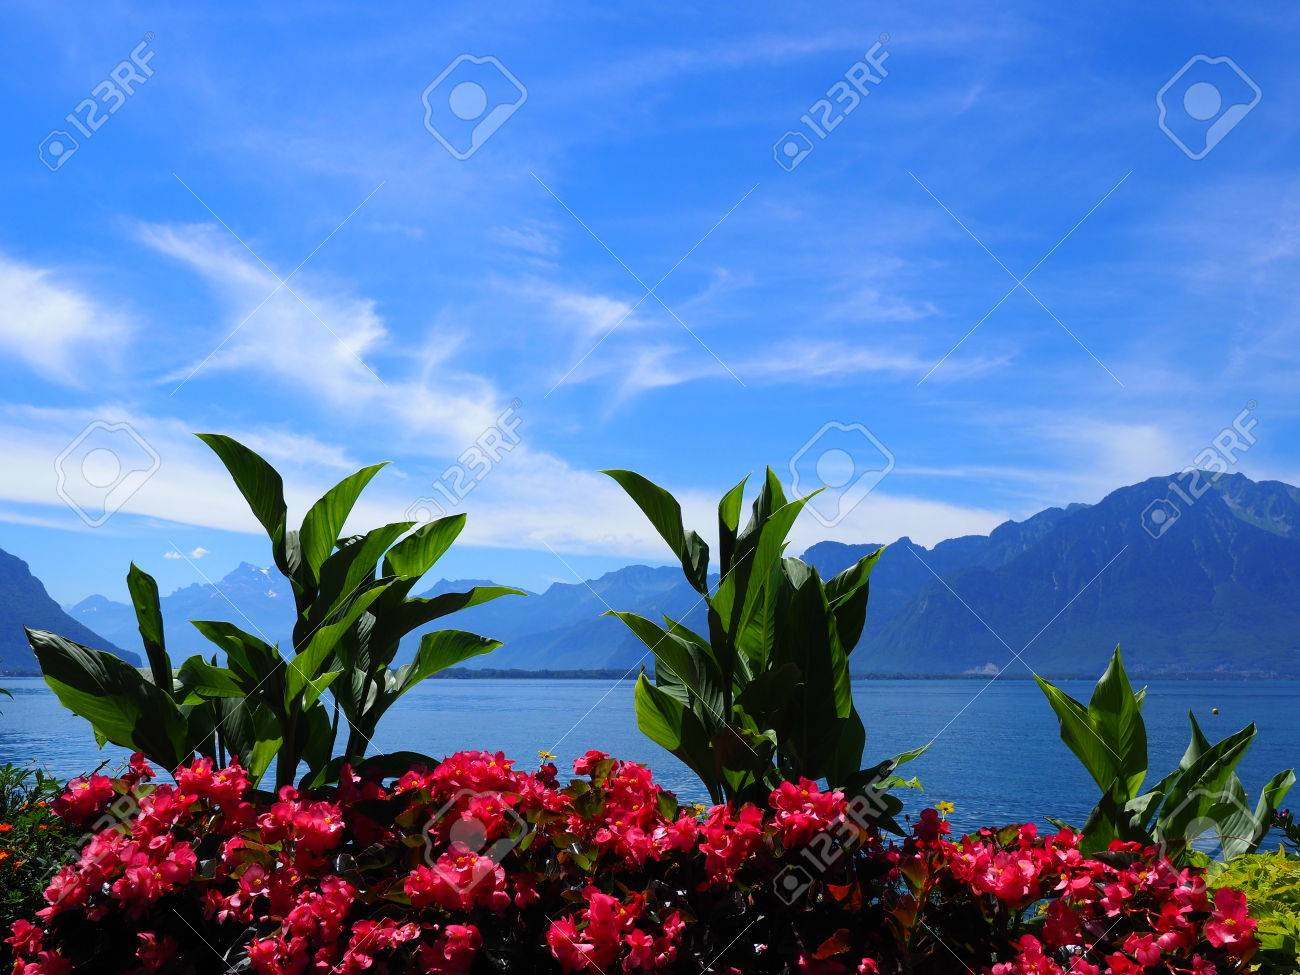 Beauty colorful flowers on promenade in montreux city at lake beauty colorful flowers on promenade in montreux city at lake geneva in switzerland with panoramic view izmirmasajfo Choice Image